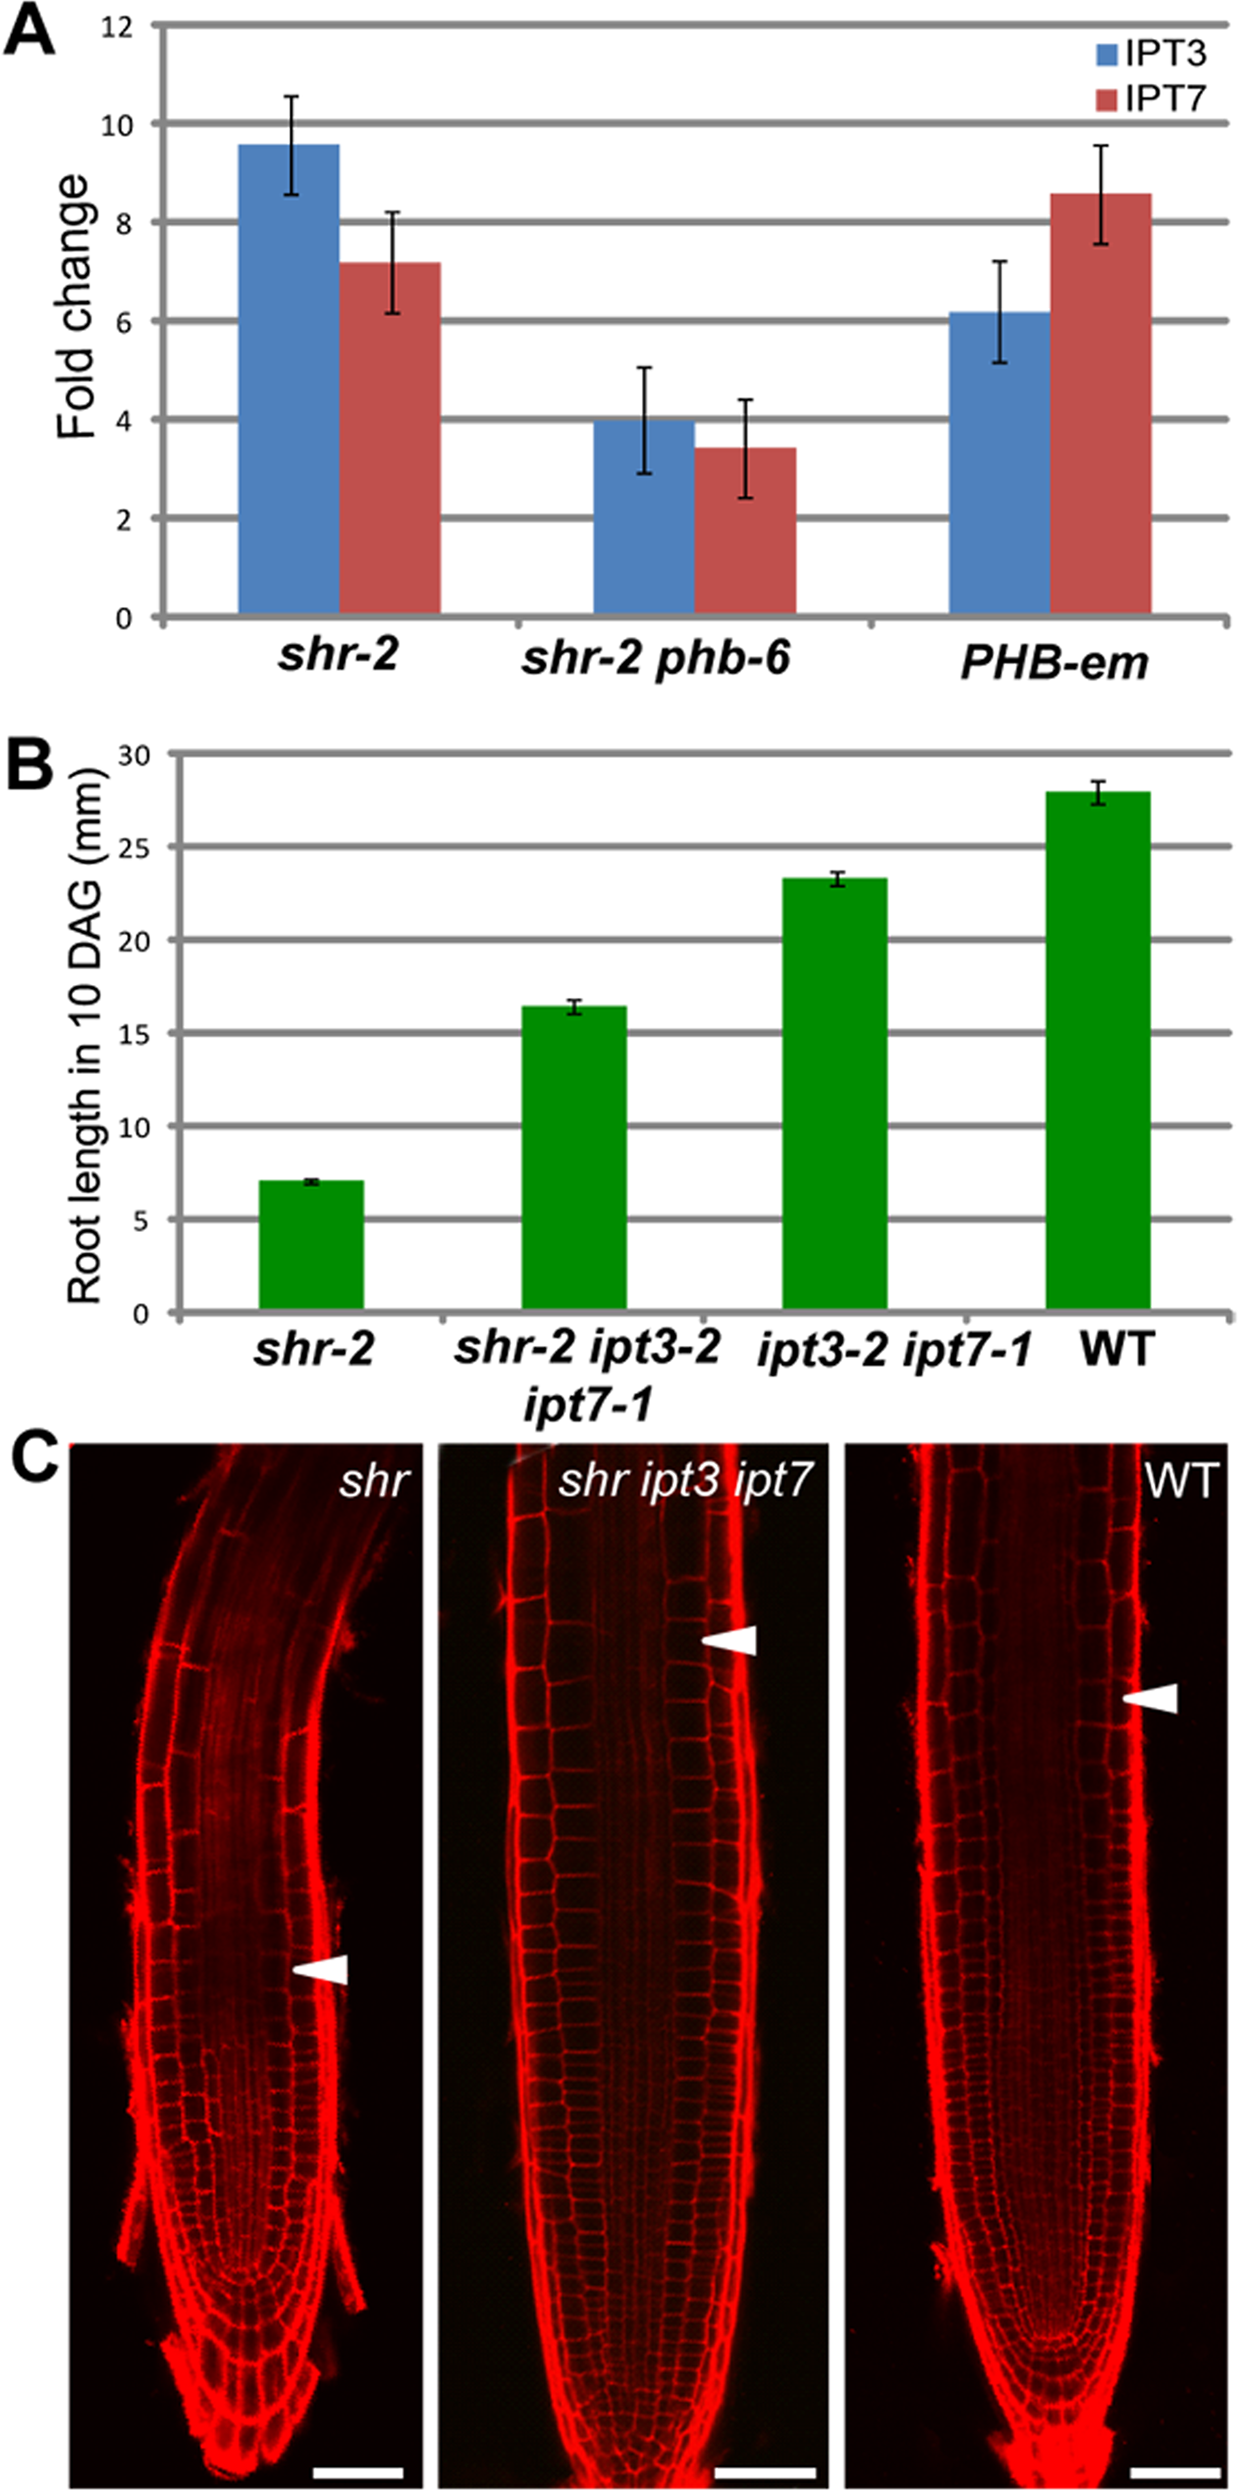 The SHR-PHB pathway controls root growth in a cytokinin-dependent manner (A) Relative mRNA levels of <i>IPT3</i> and <i>IPT7</i> in <i>shr, shr phb</i>, and <i>pWOL:PHB-em:GFP</i><sub><i>NLS</i></sub> (<i>PHB-em</i>) roots.